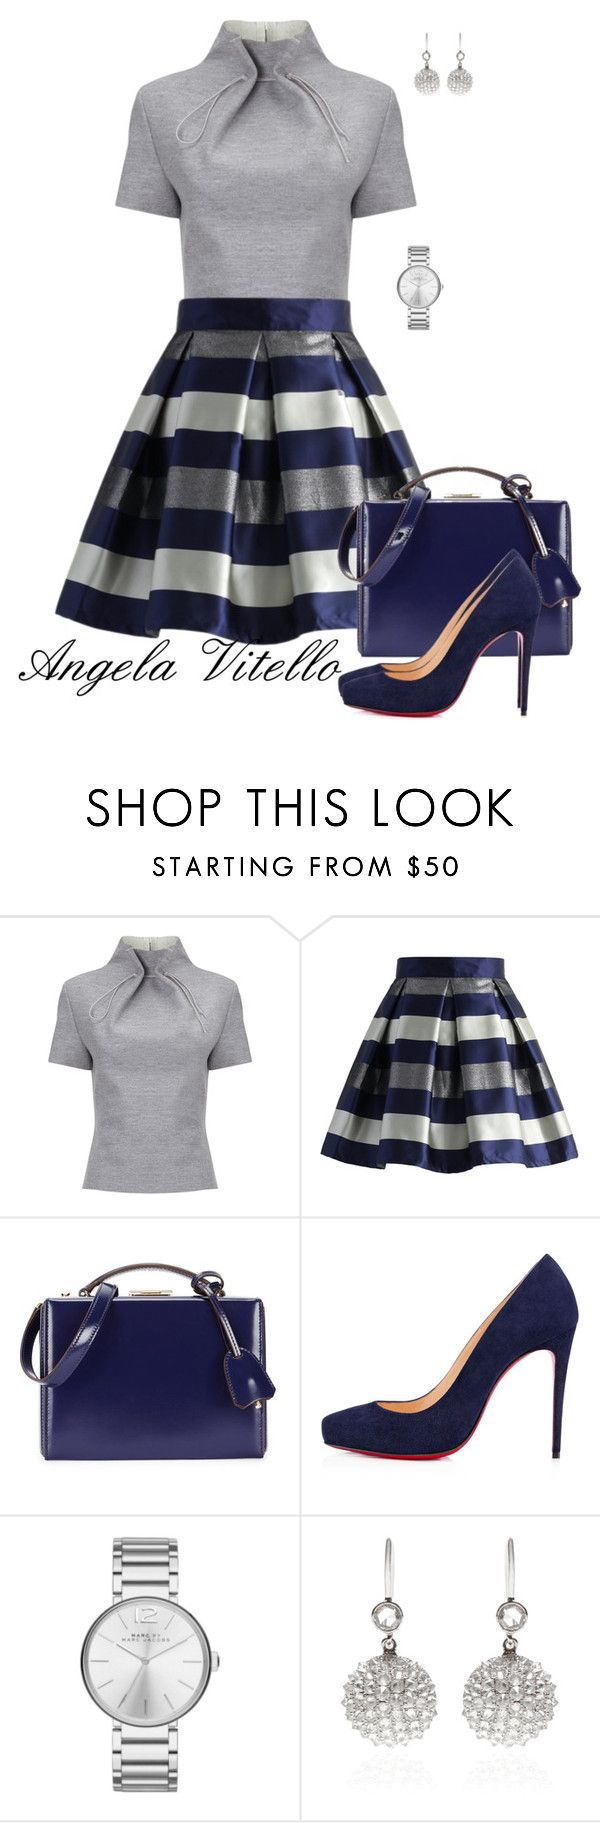 """Untitled #608"" by angela-vitello on Polyvore featuring J. JS Lee, Chicwish, Mark Cross, Christian Louboutin, Marc by Marc Jacobs and Nam Cho"